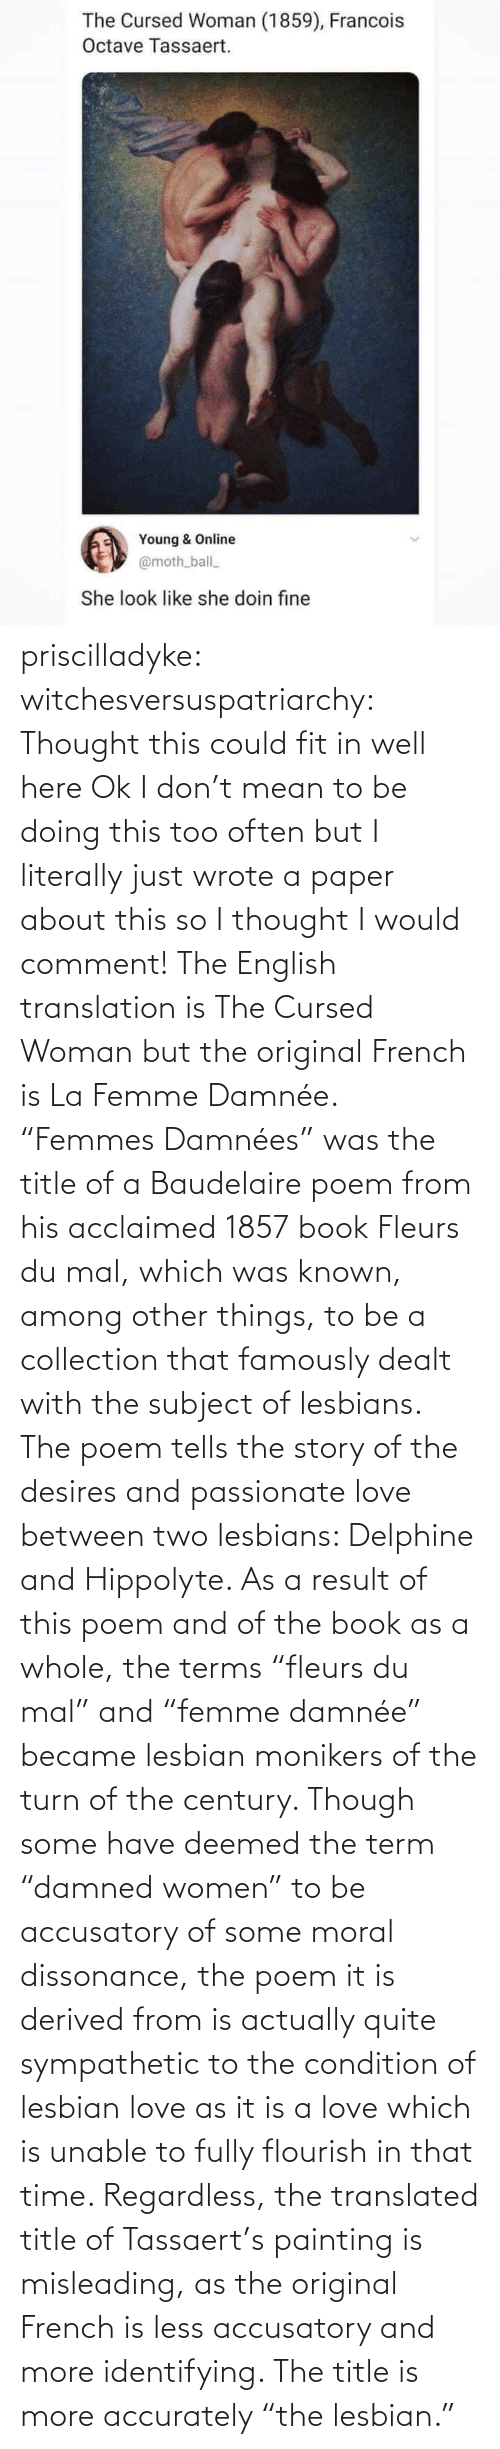 "Became: priscilladyke:  witchesversuspatriarchy: Thought this could fit in well here   Ok I don't mean to be doing this too often but I literally just wrote a paper about this so I thought I would comment! The English translation is The Cursed Woman but the original French is La Femme Damnée. ""Femmes Damnées"" was the title of a Baudelaire poem from his acclaimed 1857 book Fleurs du mal, which was known, among other things, to be a collection that famously dealt with the subject of lesbians. The poem tells the story of the desires and passionate love between two lesbians:  Delphine and Hippolyte. As a result of this poem and of the book as a whole, the terms ""fleurs du mal"" and ""femme damnée"" became lesbian monikers of the turn of the century. Though some have deemed the term ""damned women"" to be accusatory of some moral dissonance, the poem it is derived from is actually quite sympathetic to the condition of lesbian love as it is a love which is unable to fully flourish in that time. Regardless, the translated title of Tassaert's painting is misleading, as the original French is less accusatory and more identifying. The title is more accurately ""the lesbian."""